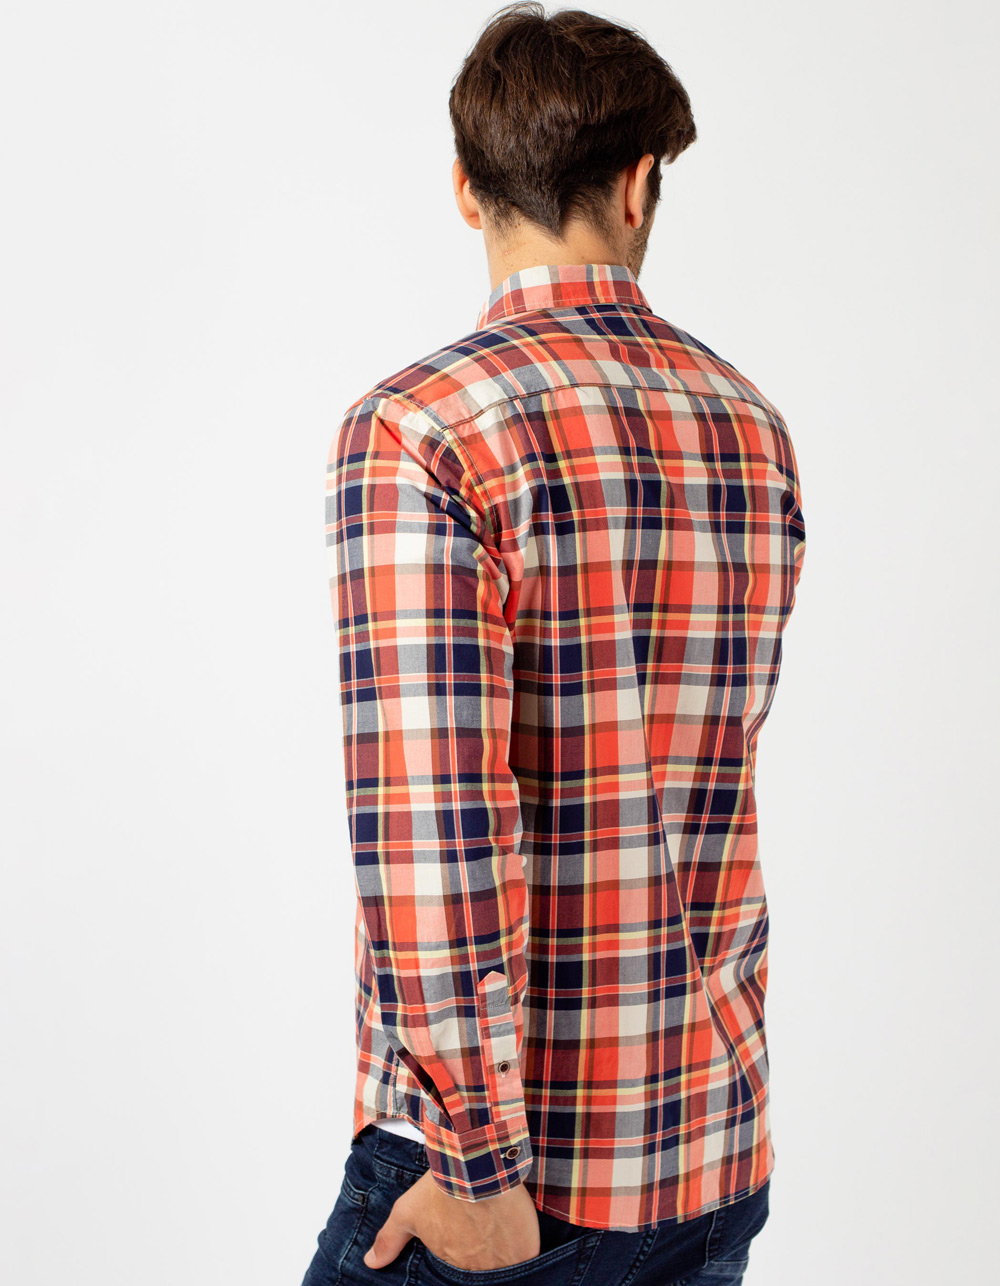 Checkered shirt - Backside